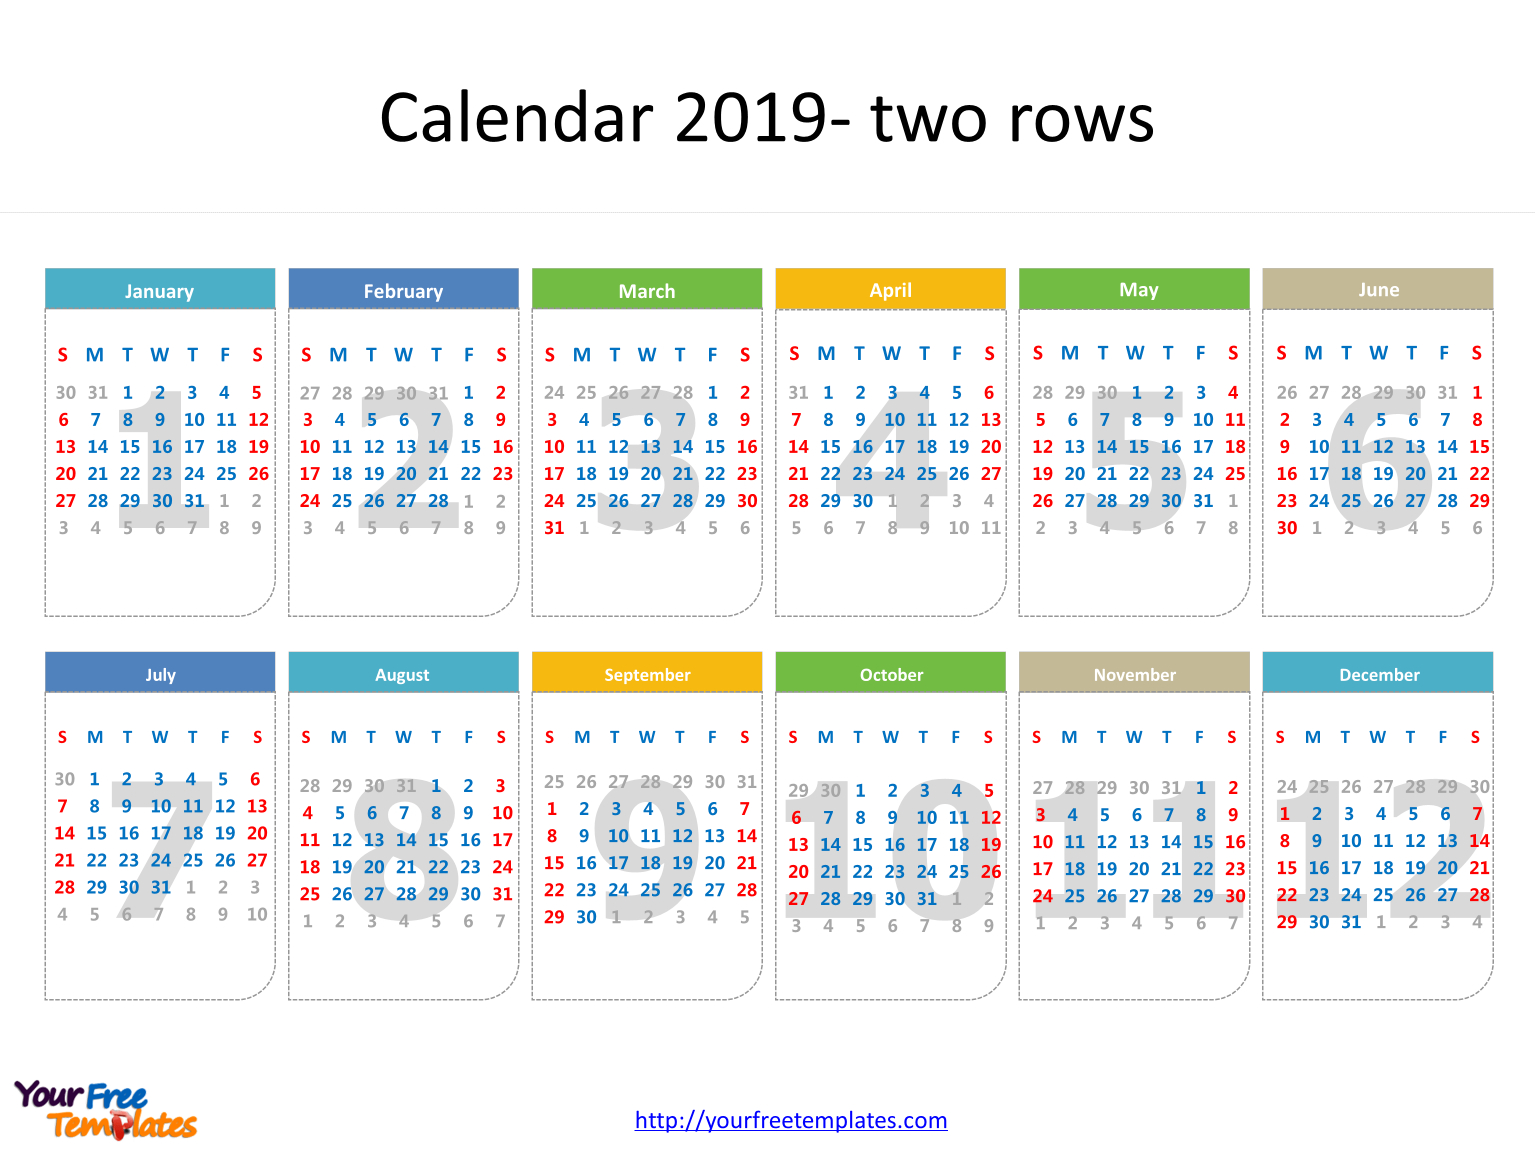 Printable Calendar 2019 Template - Free Powerpoint Templates Calendar 2019 Template Powerpoint